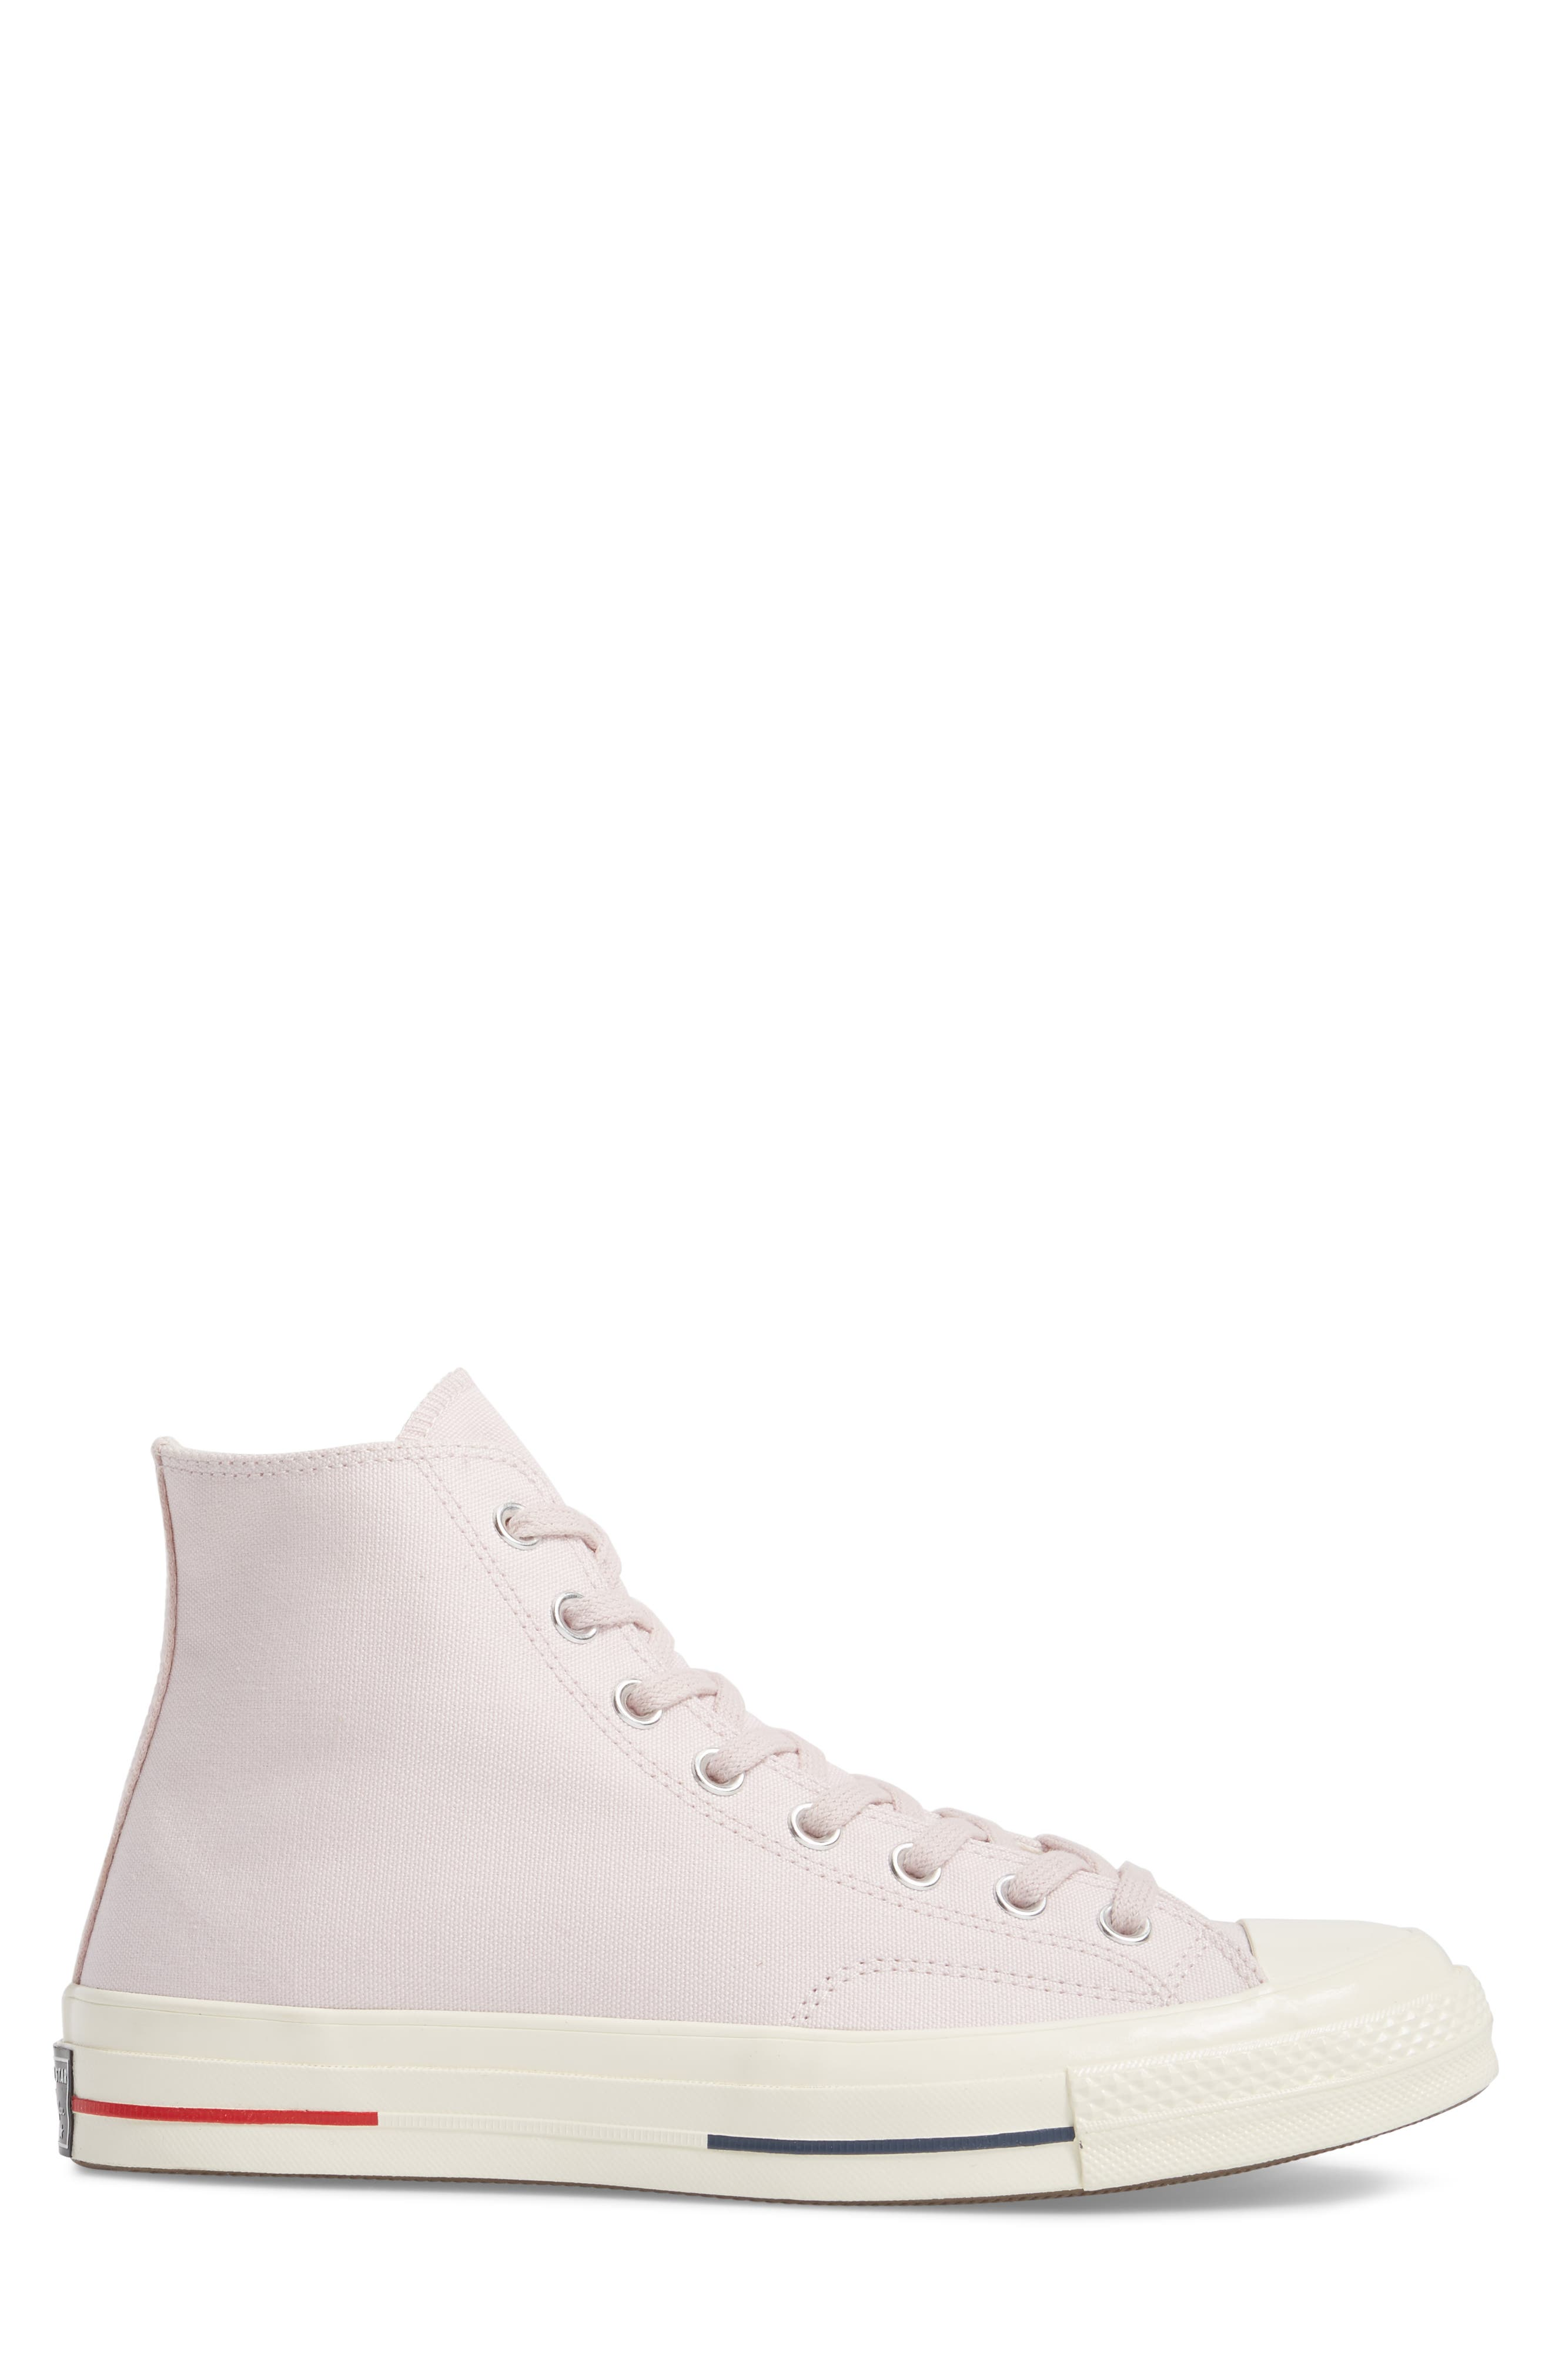 Chuck Taylor<sup>®</sup> All Star<sup>®</sup> '70 Heritage High Top Sneaker,                             Alternate thumbnail 3, color,                             653